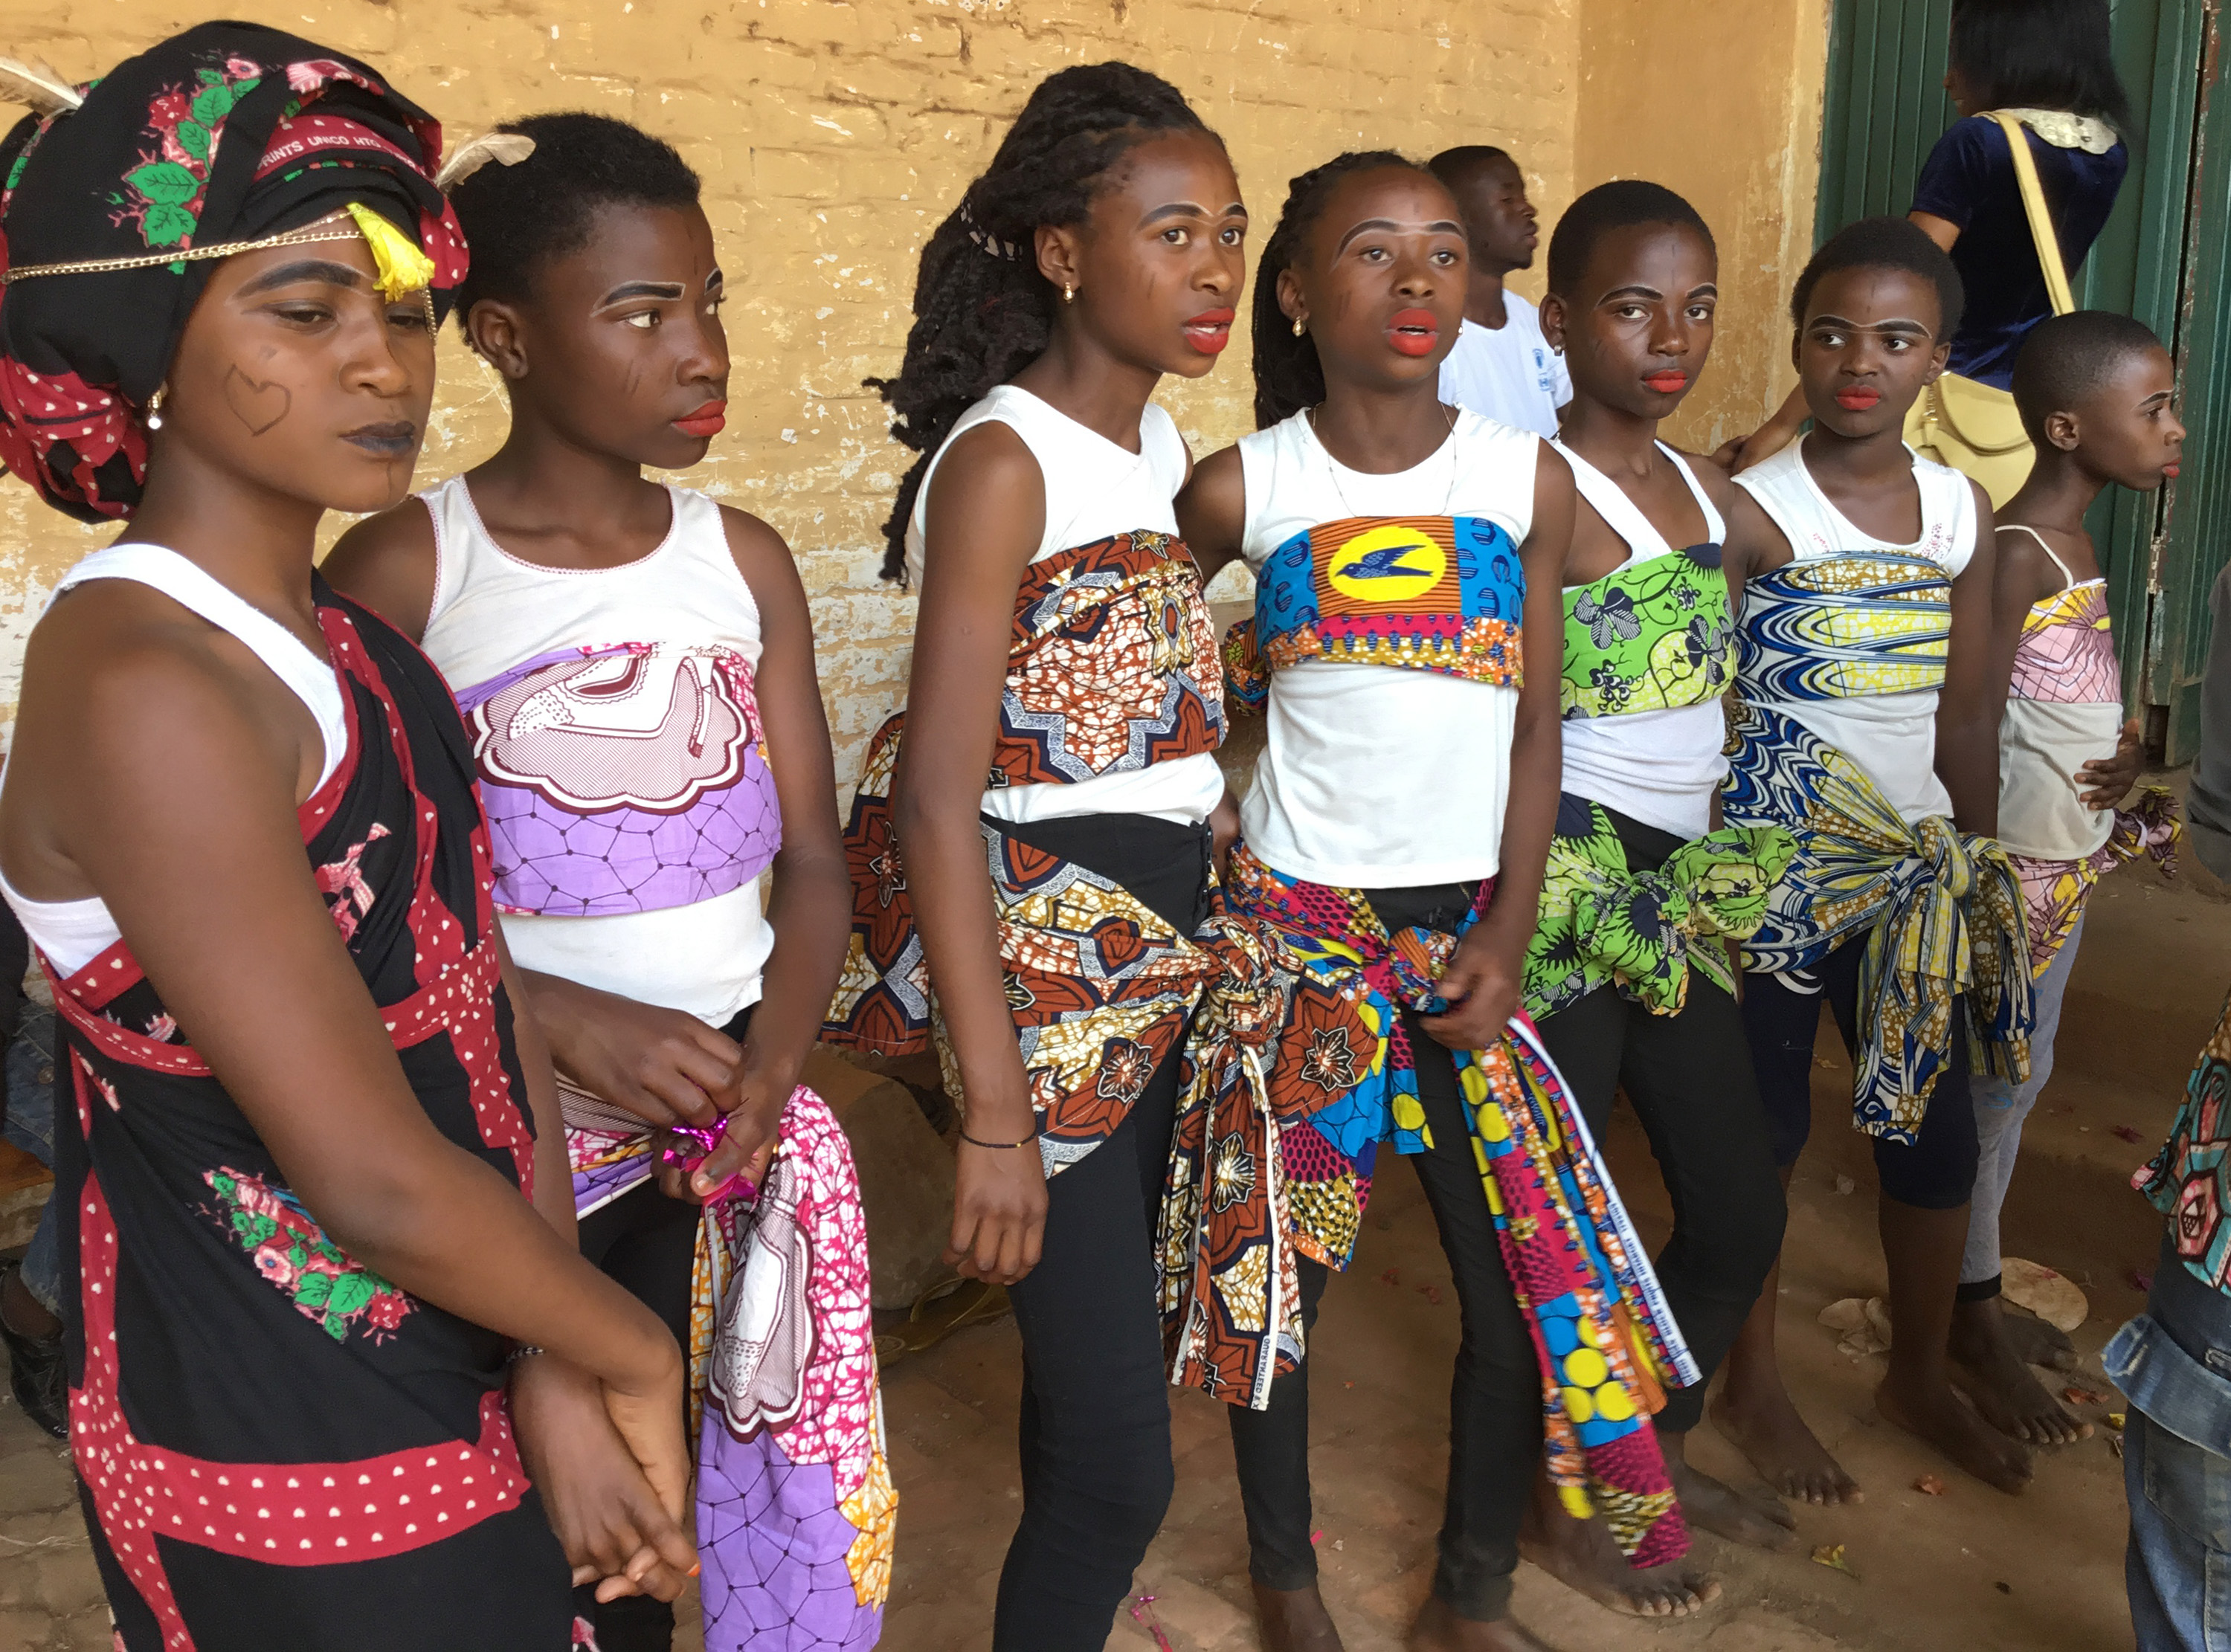 Girls are introduced to fashion and makeup during the camp. Photo by Philippe Kituka Lolonga.